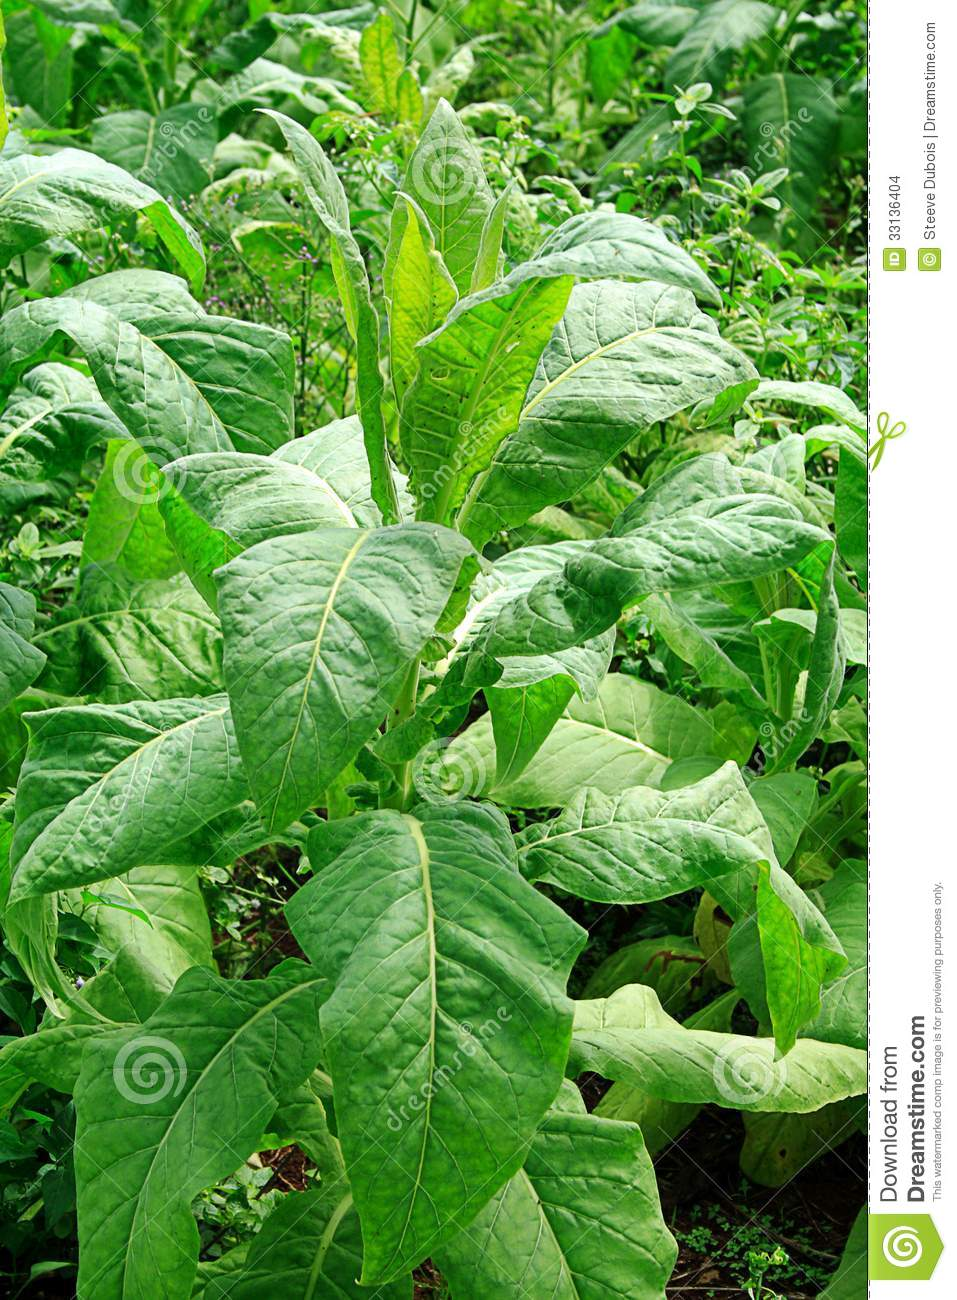 Mature Tobacco Plant With Large Green Leaves Stock Photo